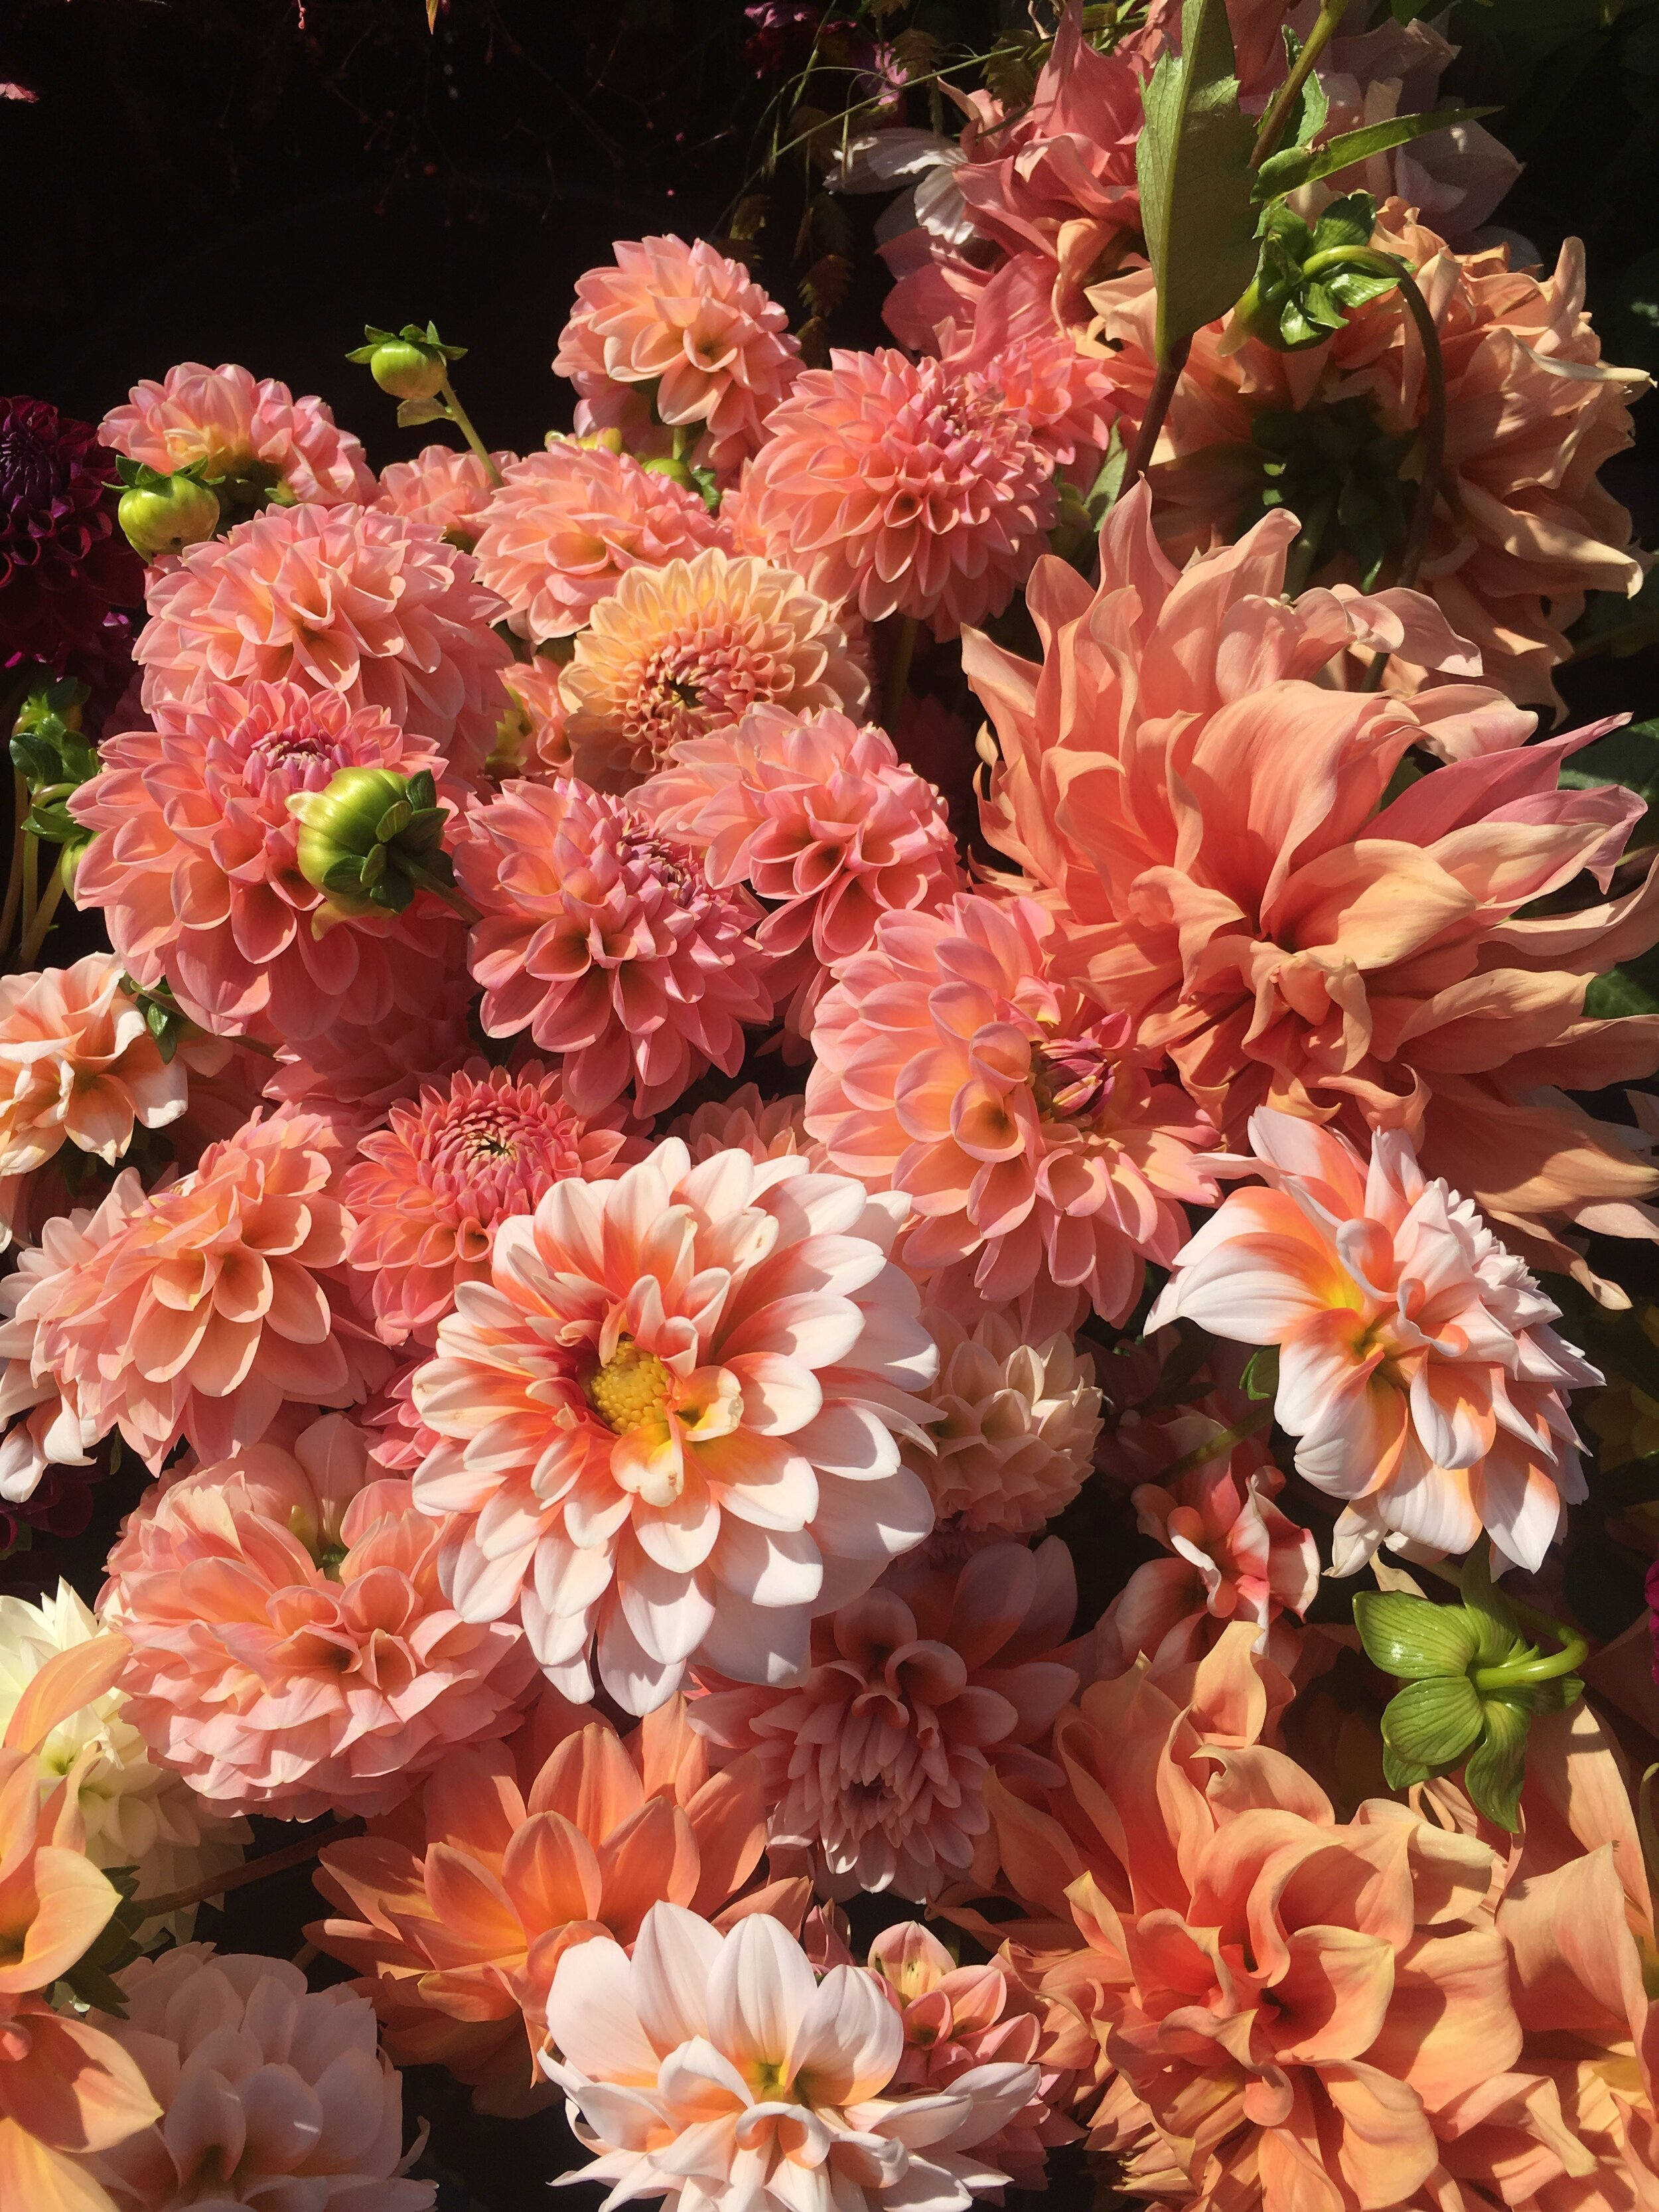 We're still harvesting hundreds of dahlias each week. I can't get enough of these gorgeous peachy blooms!